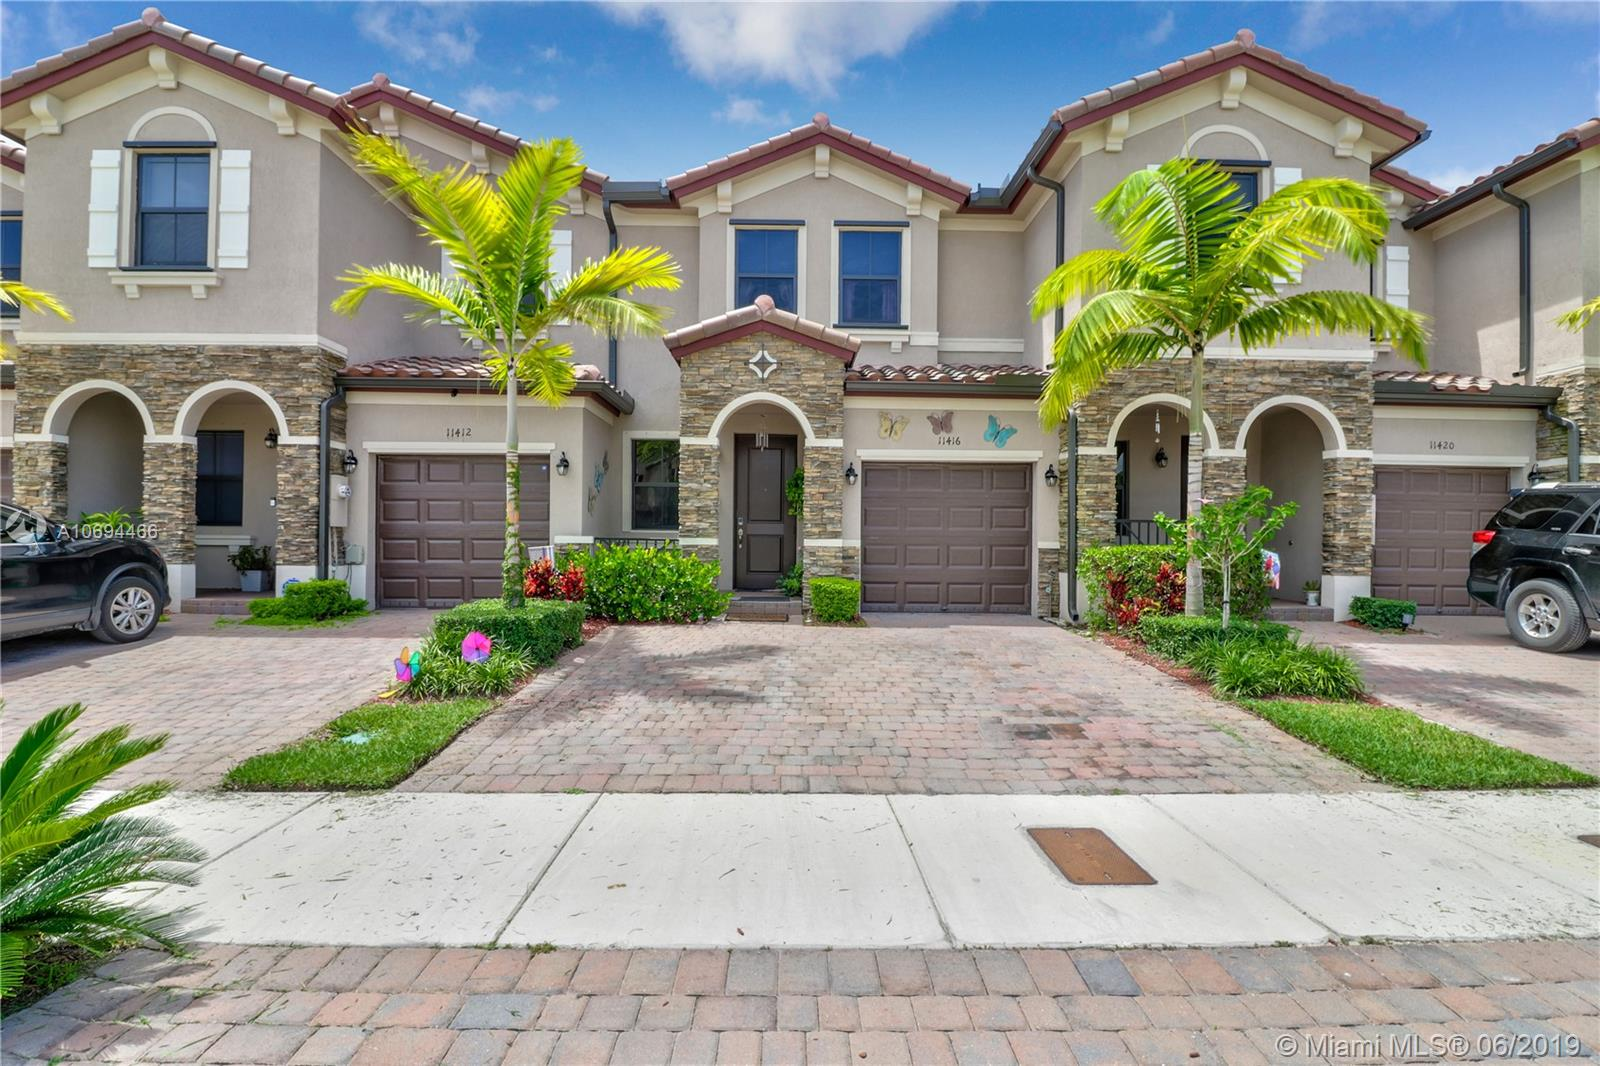 11416 SW 254th St, Homestead, FL 33032 - Homestead, FL real estate listing